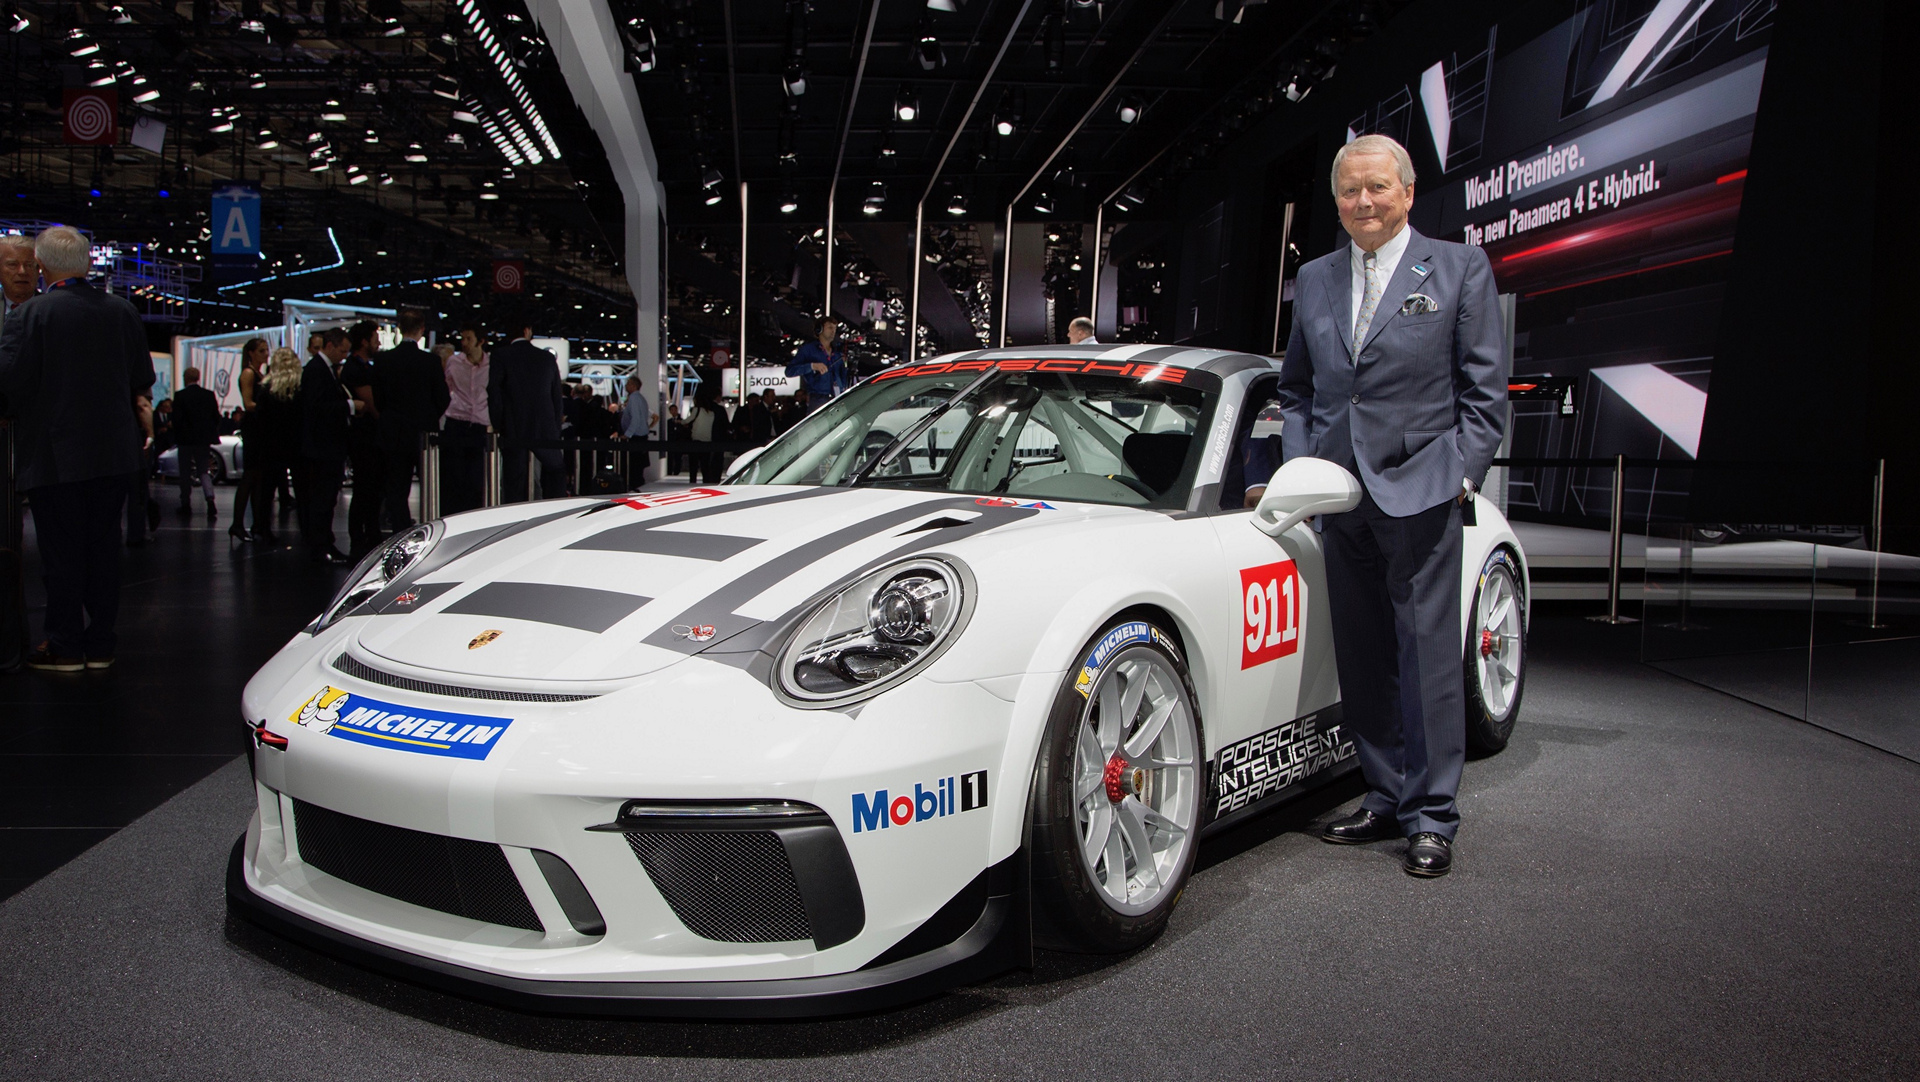 Dr. Wolfgang Porsche, Chairman of the Supervisory Board of Porsche AG, 911 GT3 Cup © Dr. Ing. h.c. F. Porsche AG